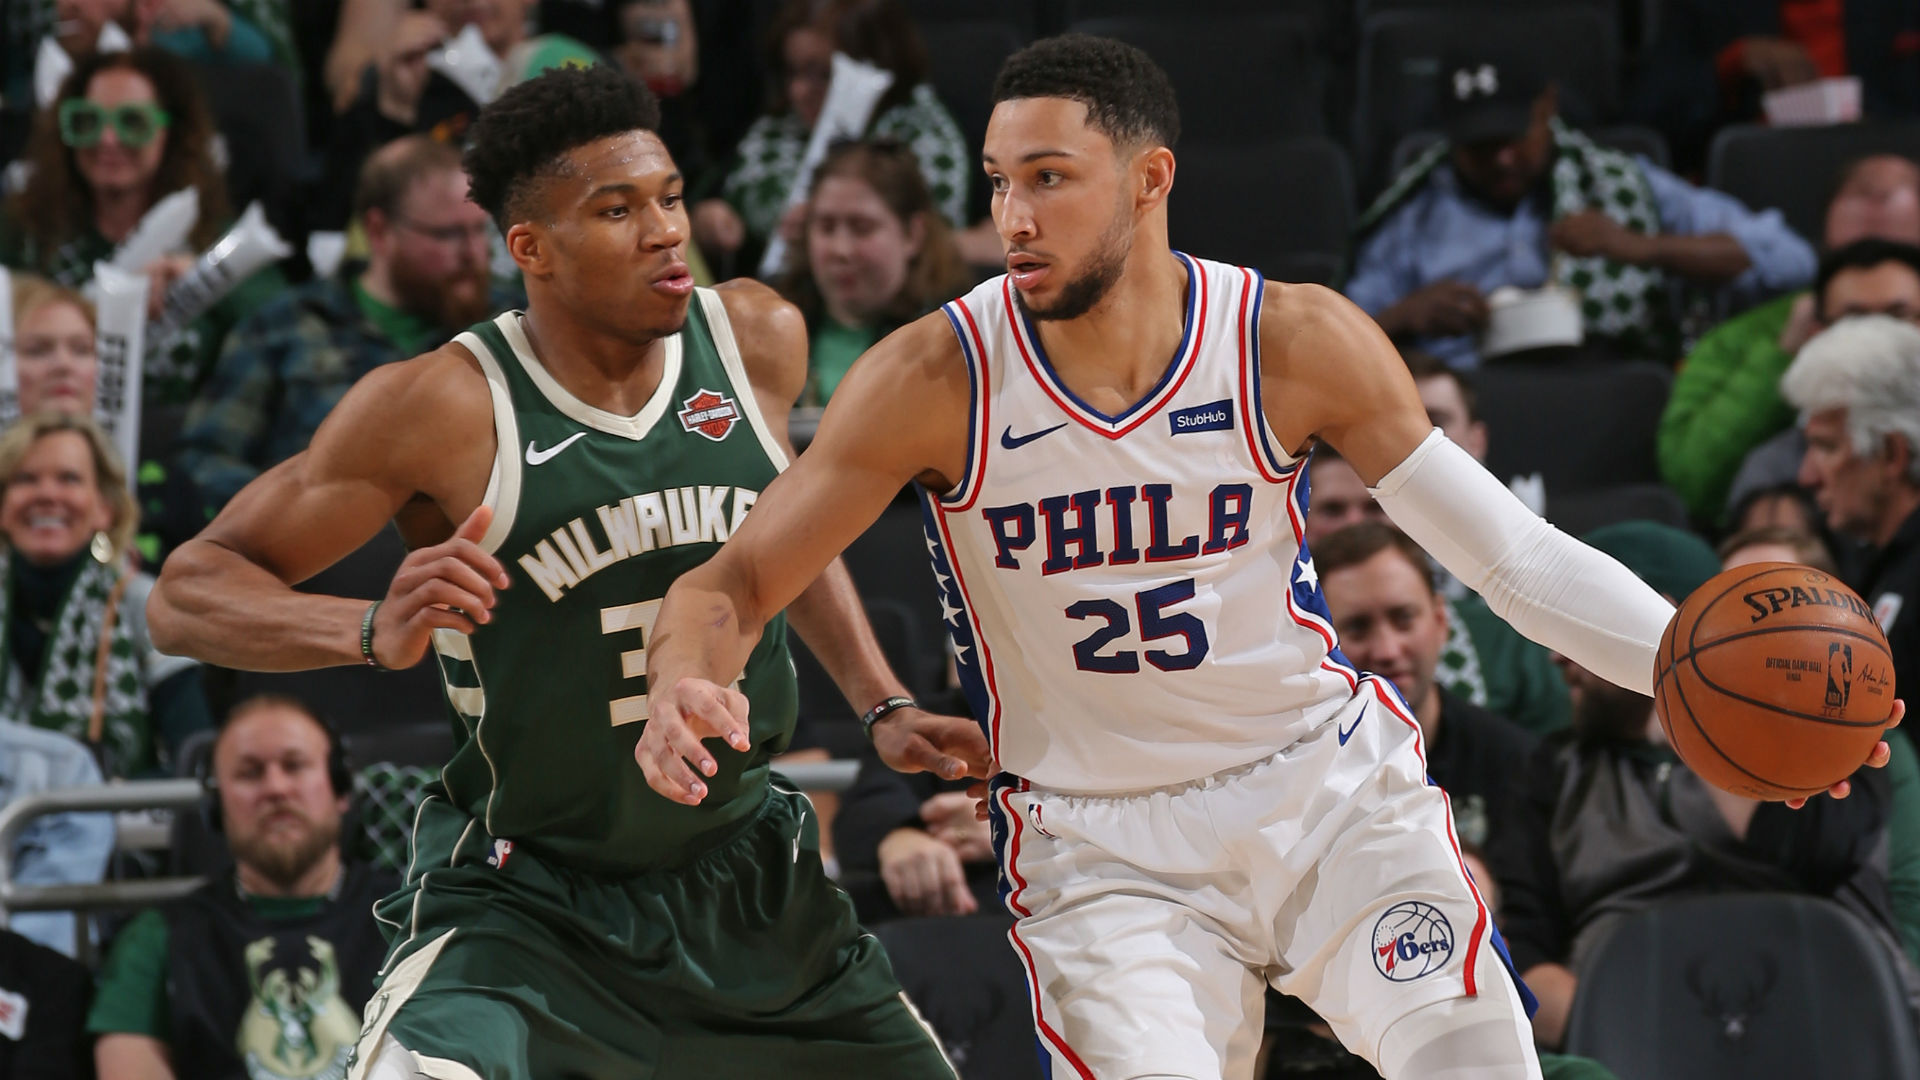 Making the case for Eastern Conference favourites to reach the NBA Finals